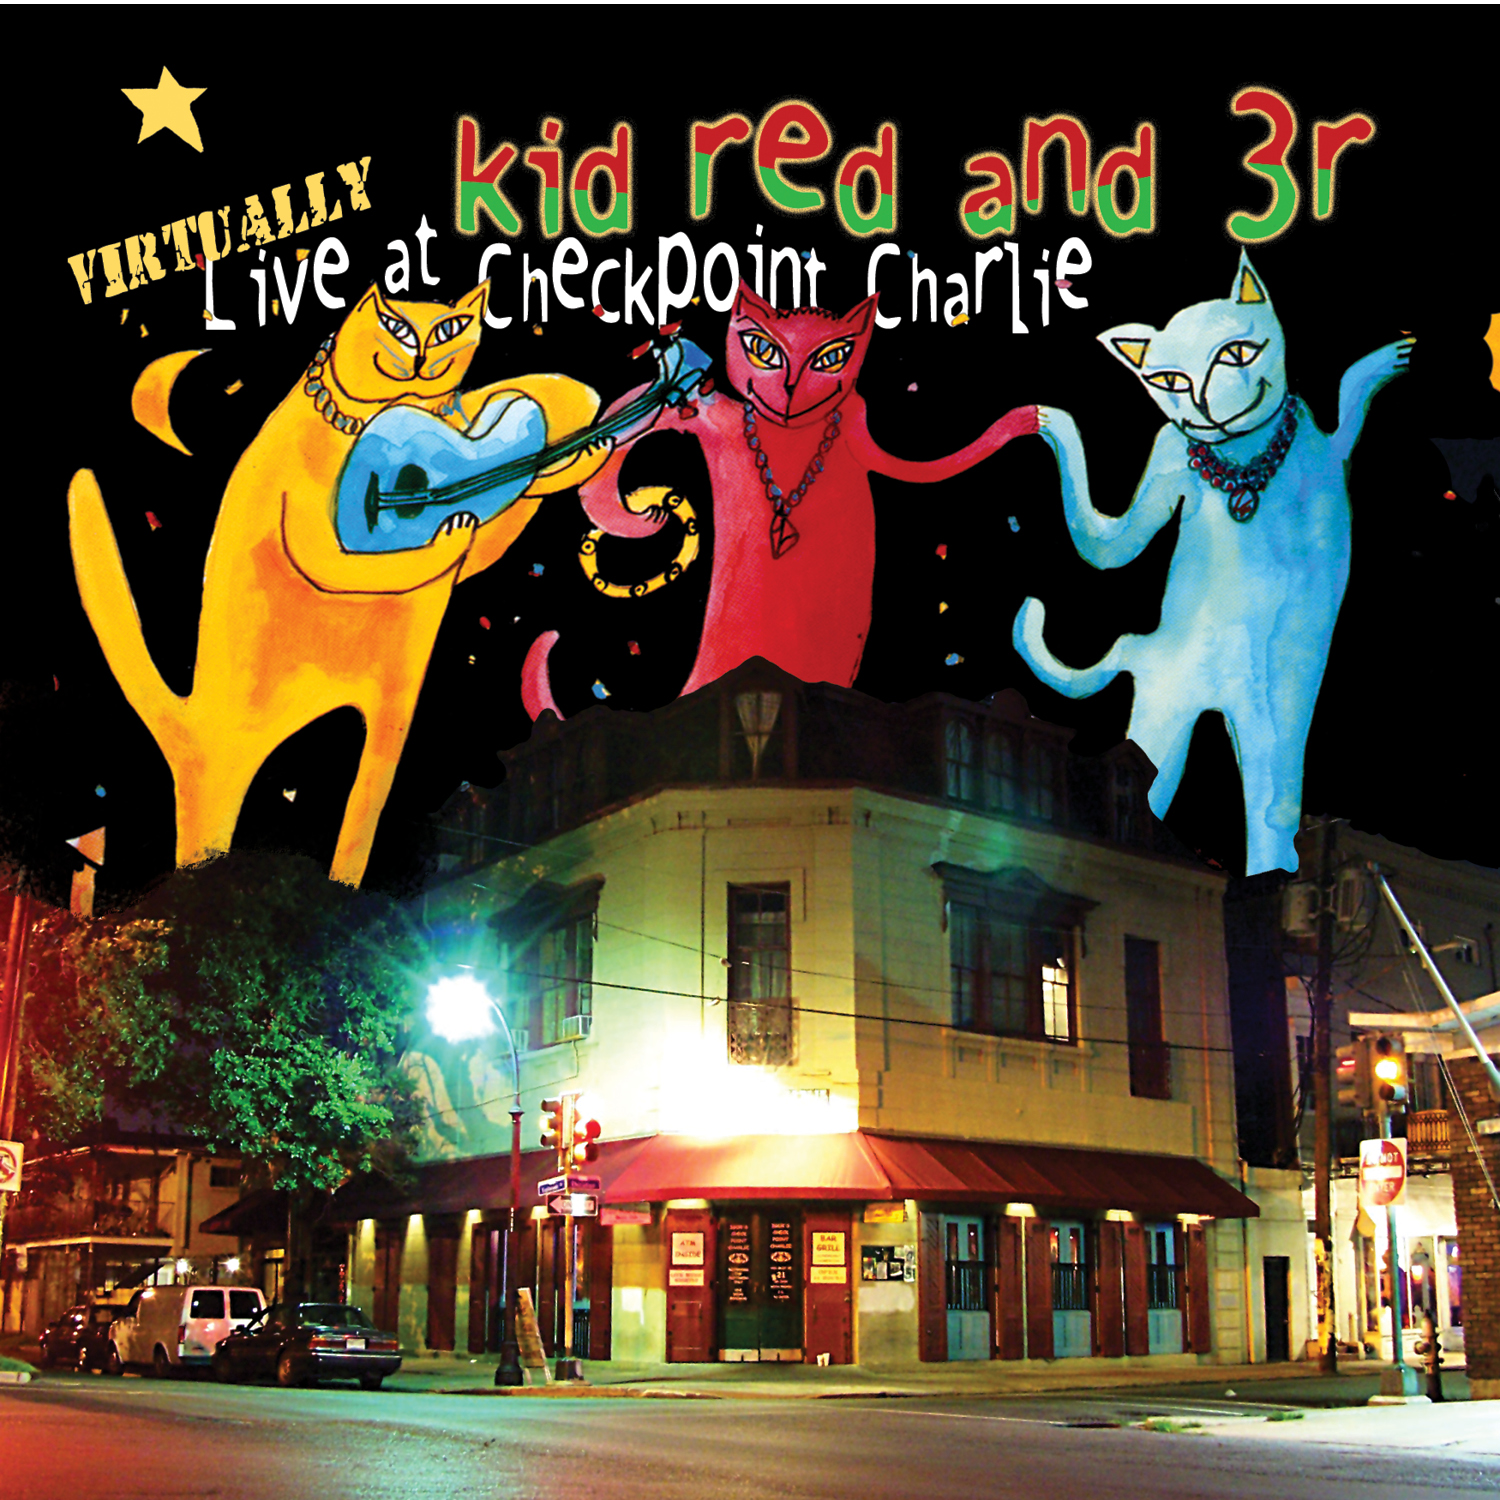 kid red checkpoint charlie cover